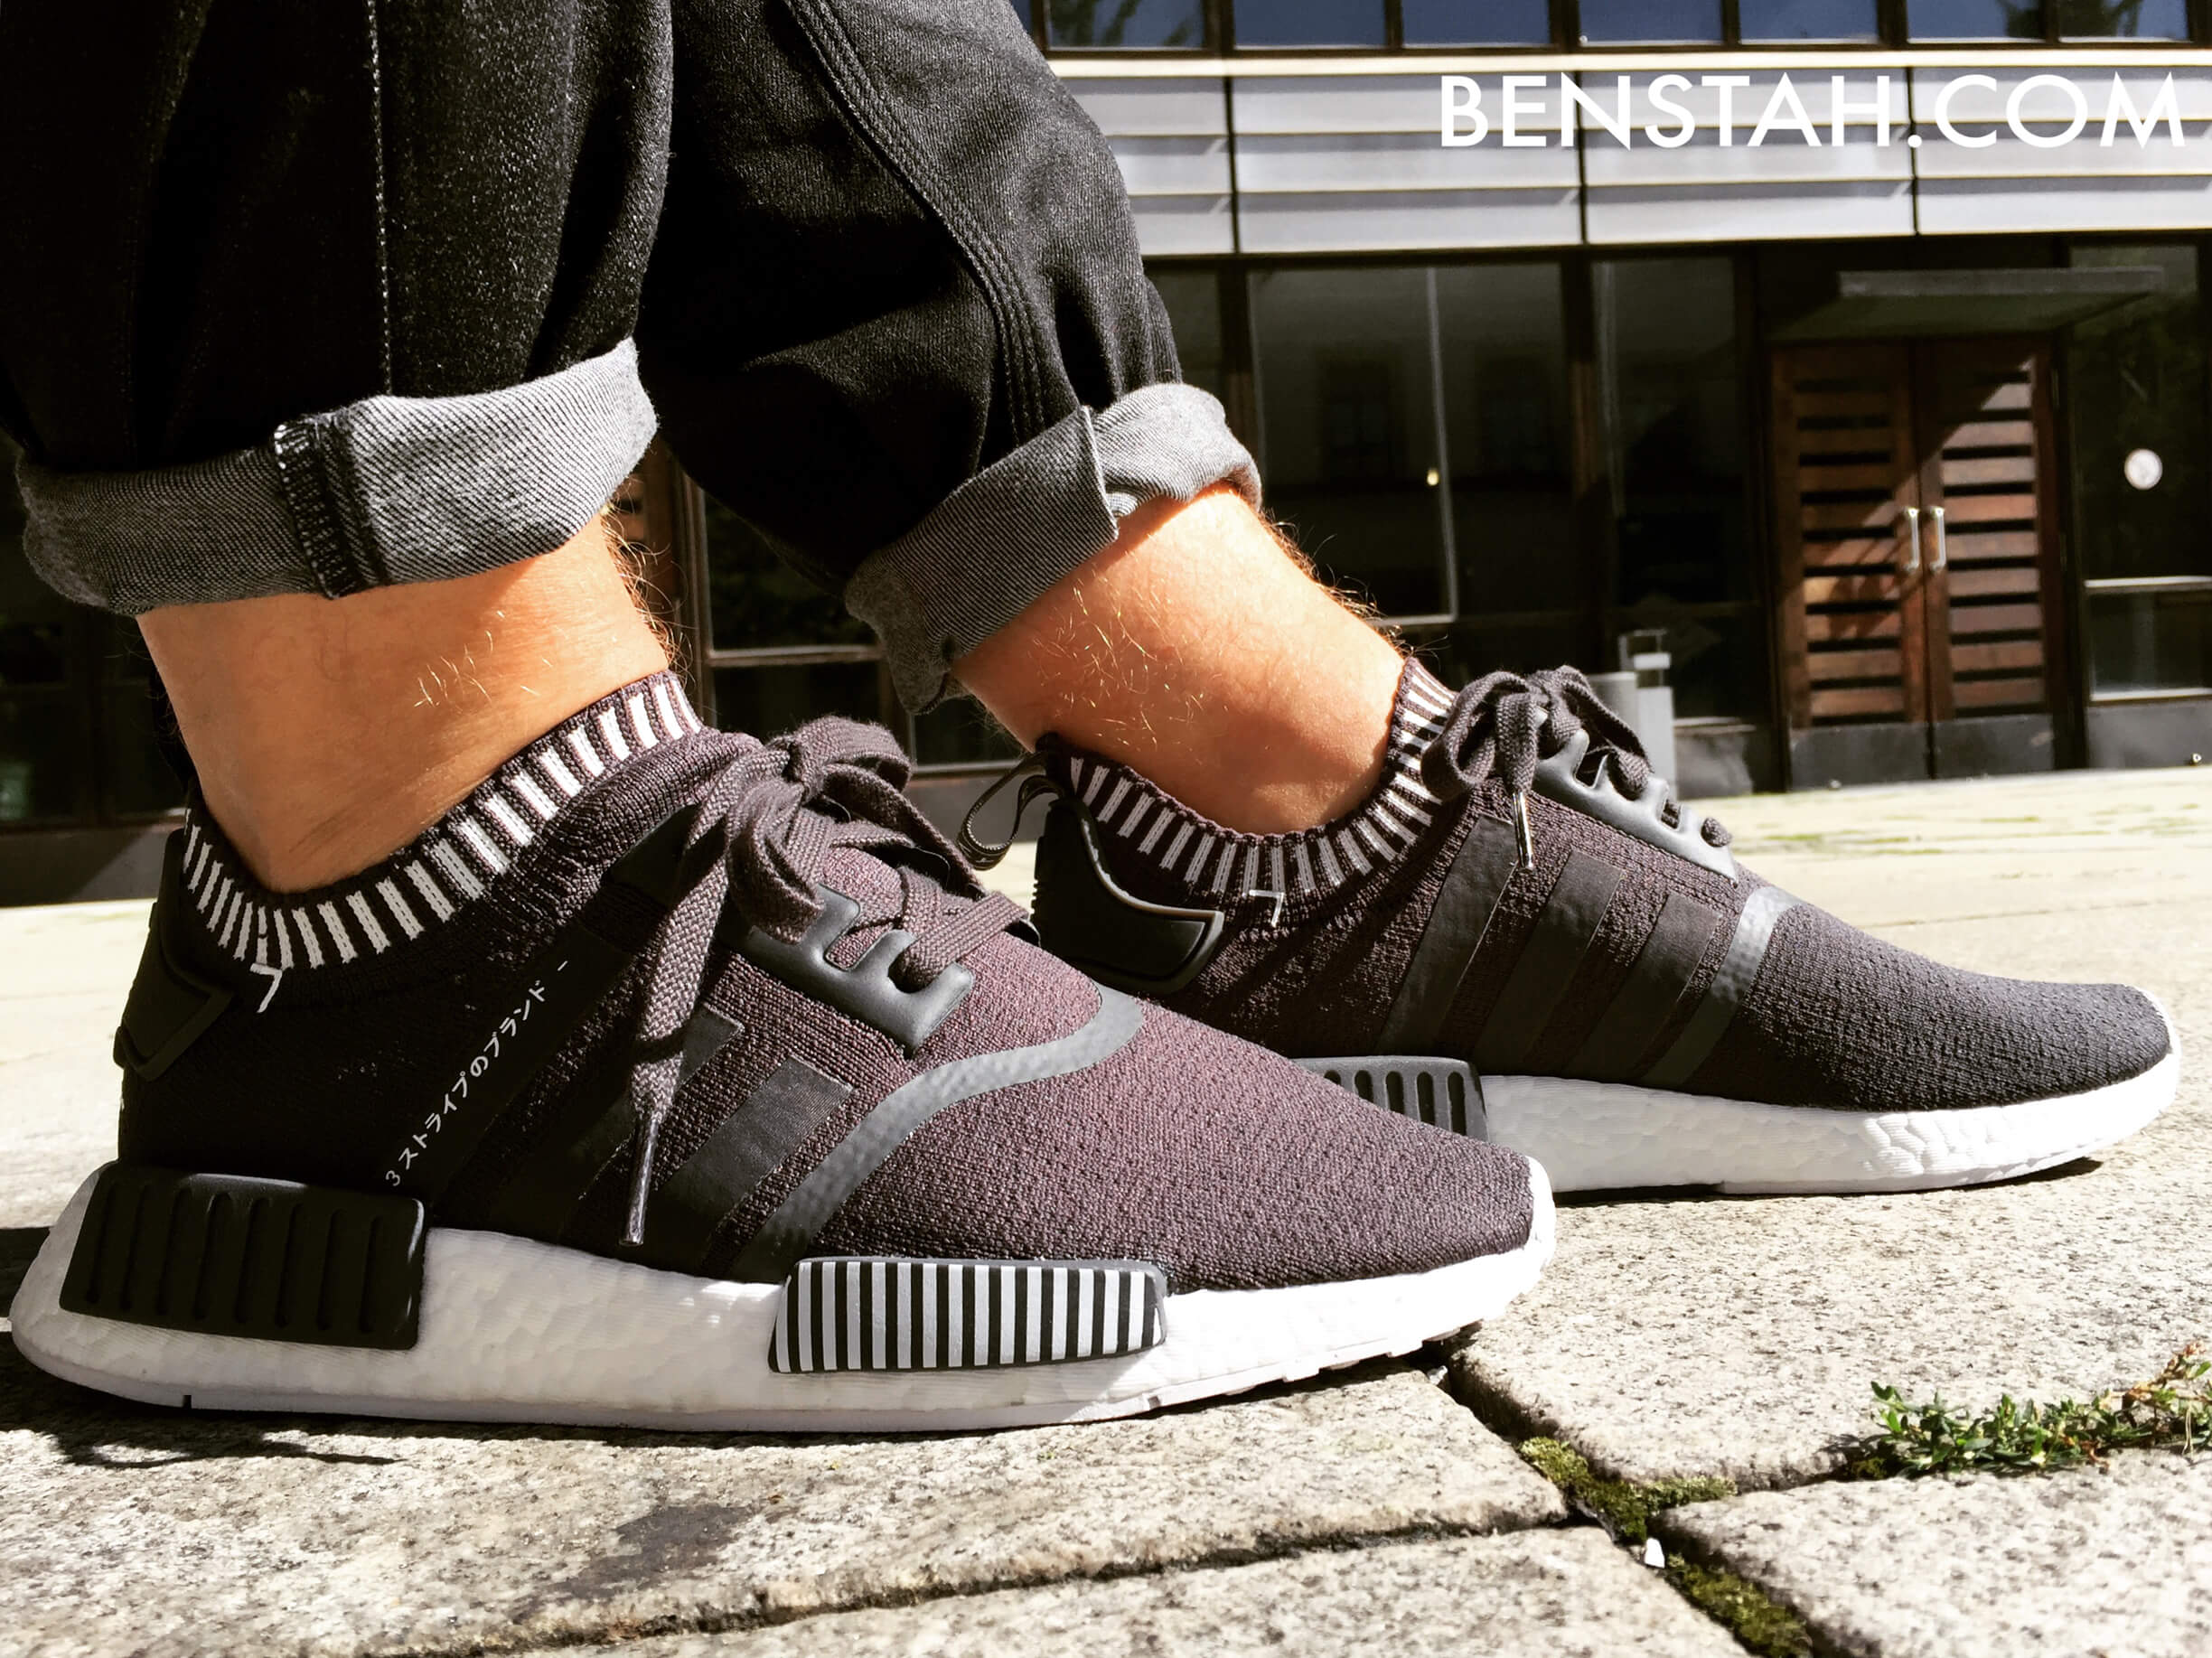 adidas-nmd-r1-primeknit-japan-boost-solid-grey-side-view-bensta-onfeet